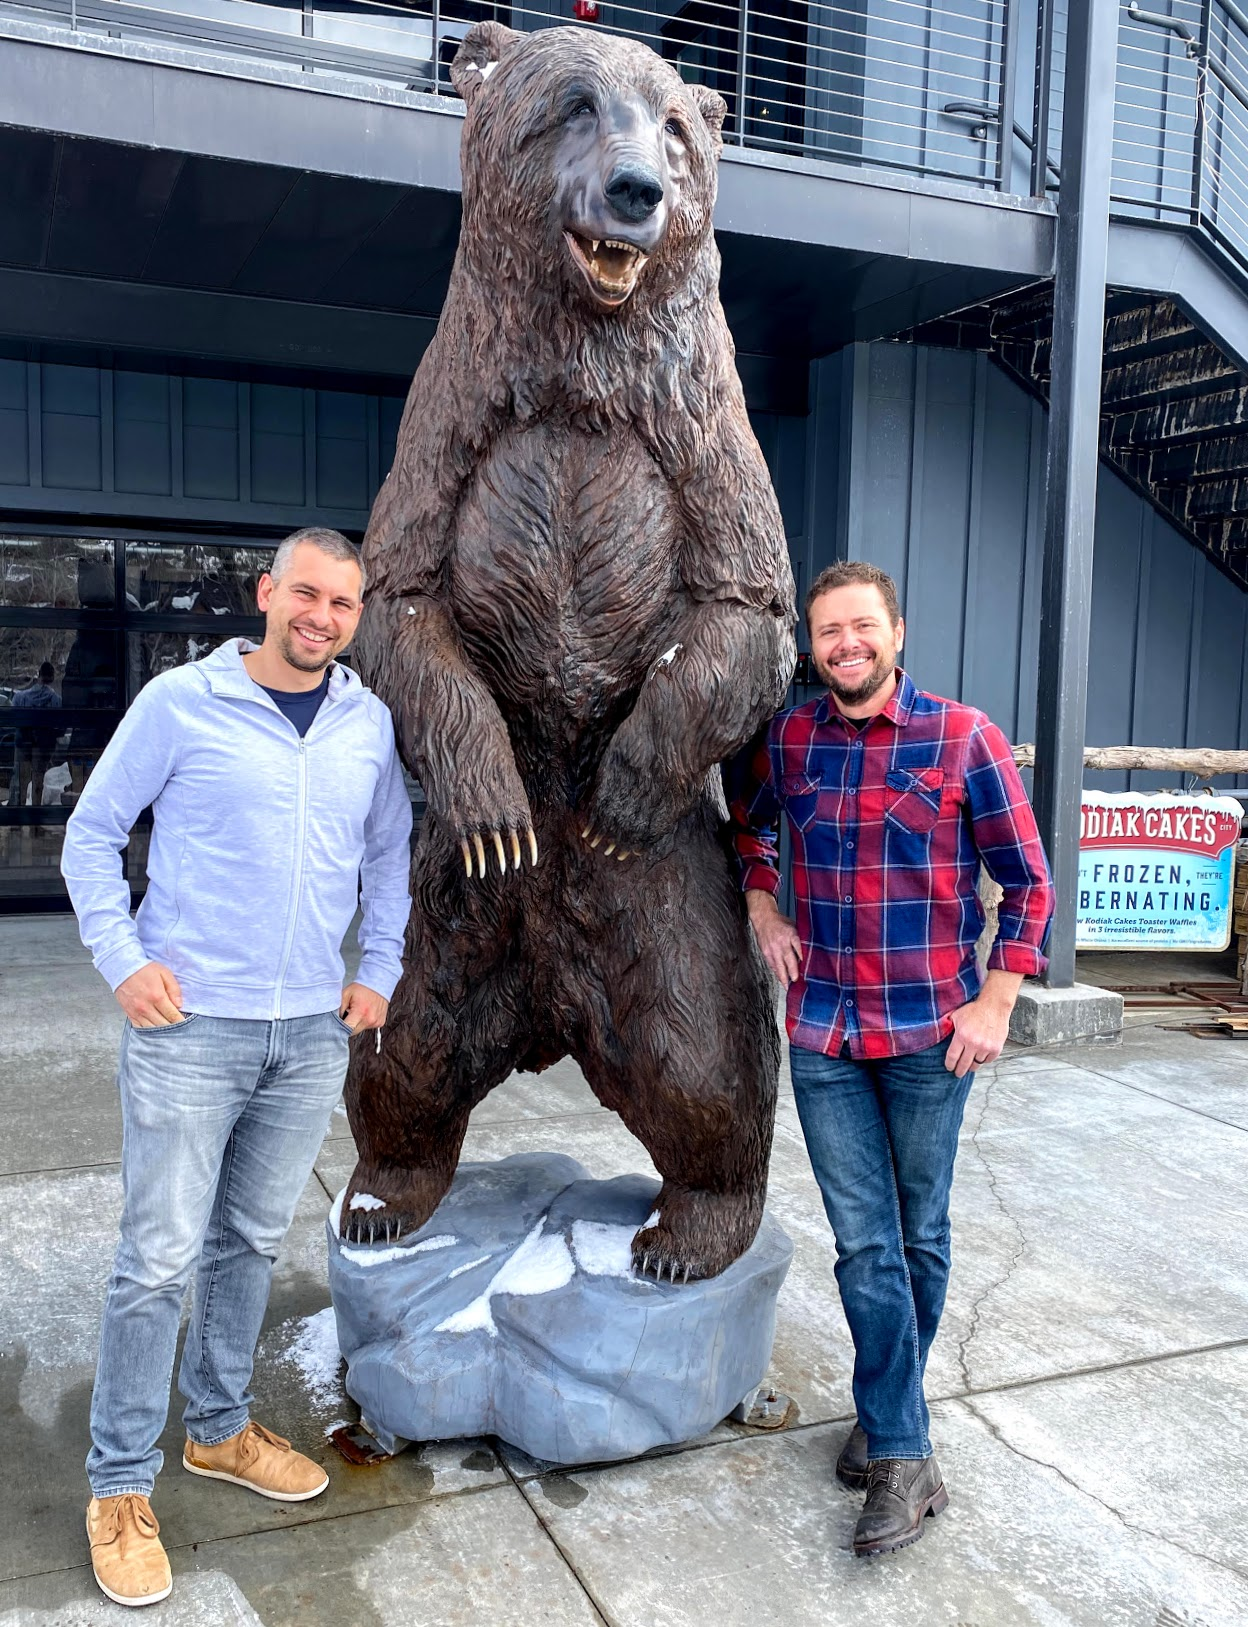 Kodiak Cake President Cameron Smith, left, and CEO Joel Clark pose with Kodiak the bear in front of the company's headquarters in Park City.